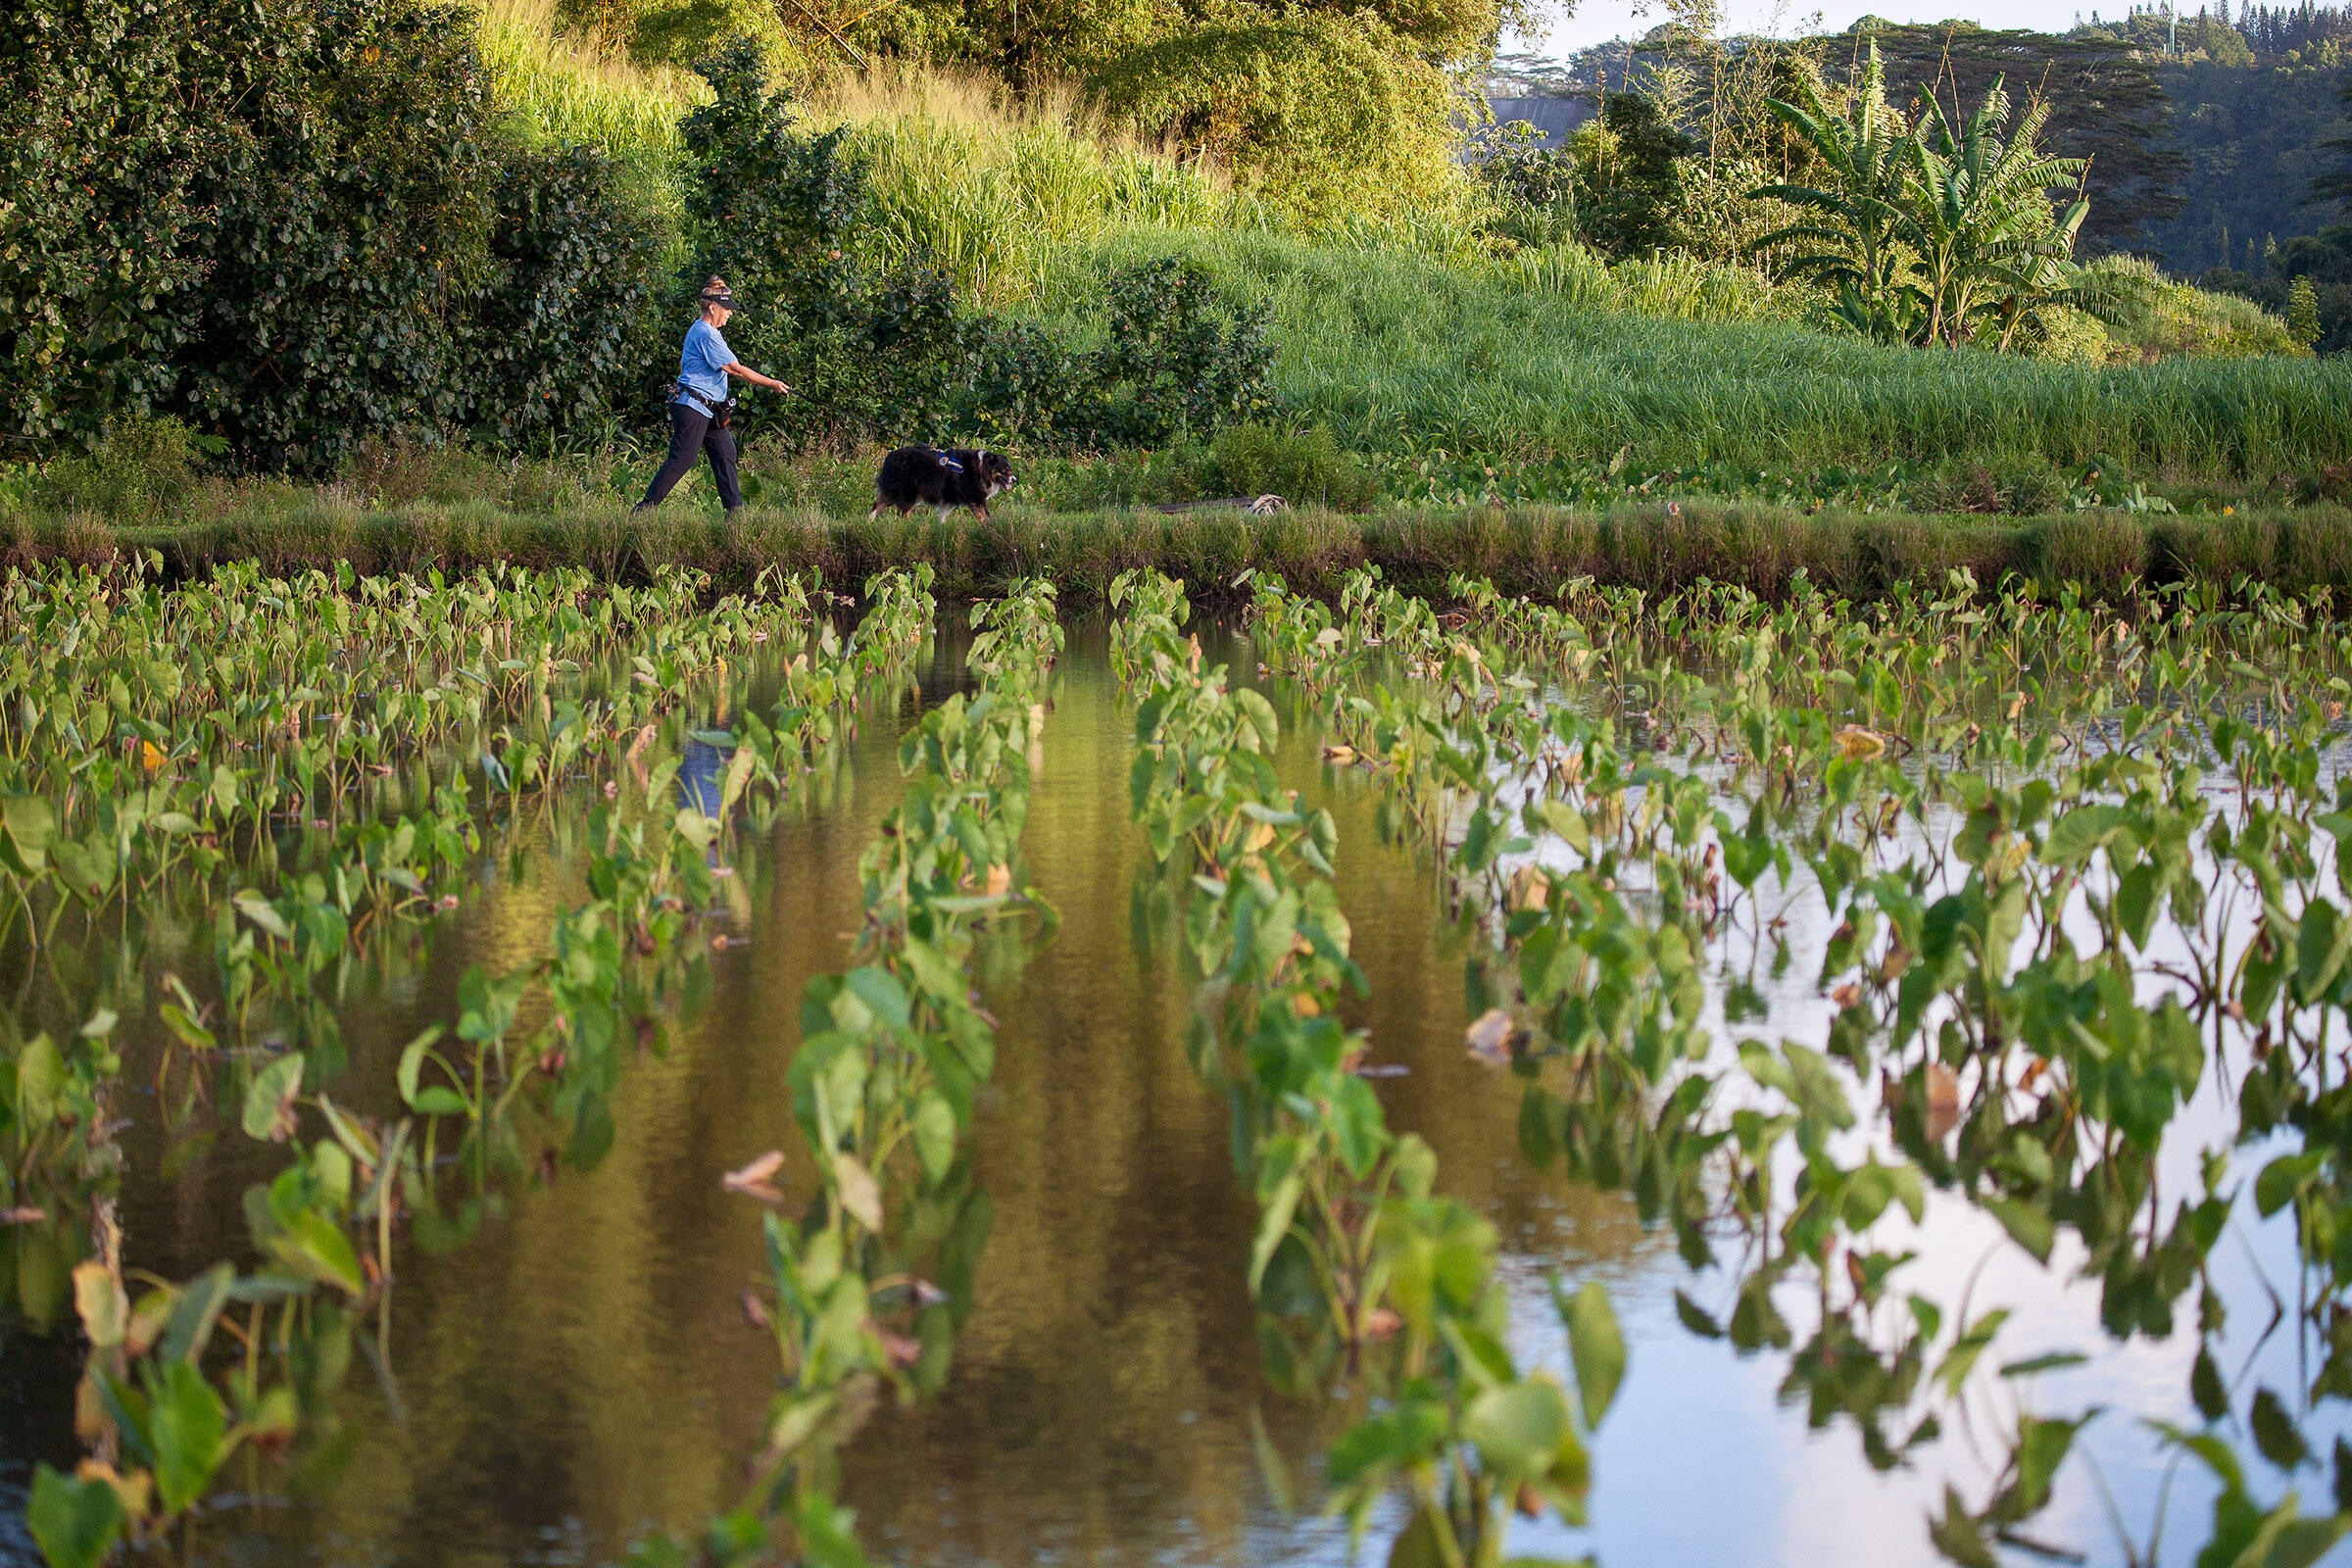 Green plants stand in rows in a flooded agricultural field. A woman in a blue shirt and a large black dog walk along the back edge of the field, with lush shrubbery in the background.